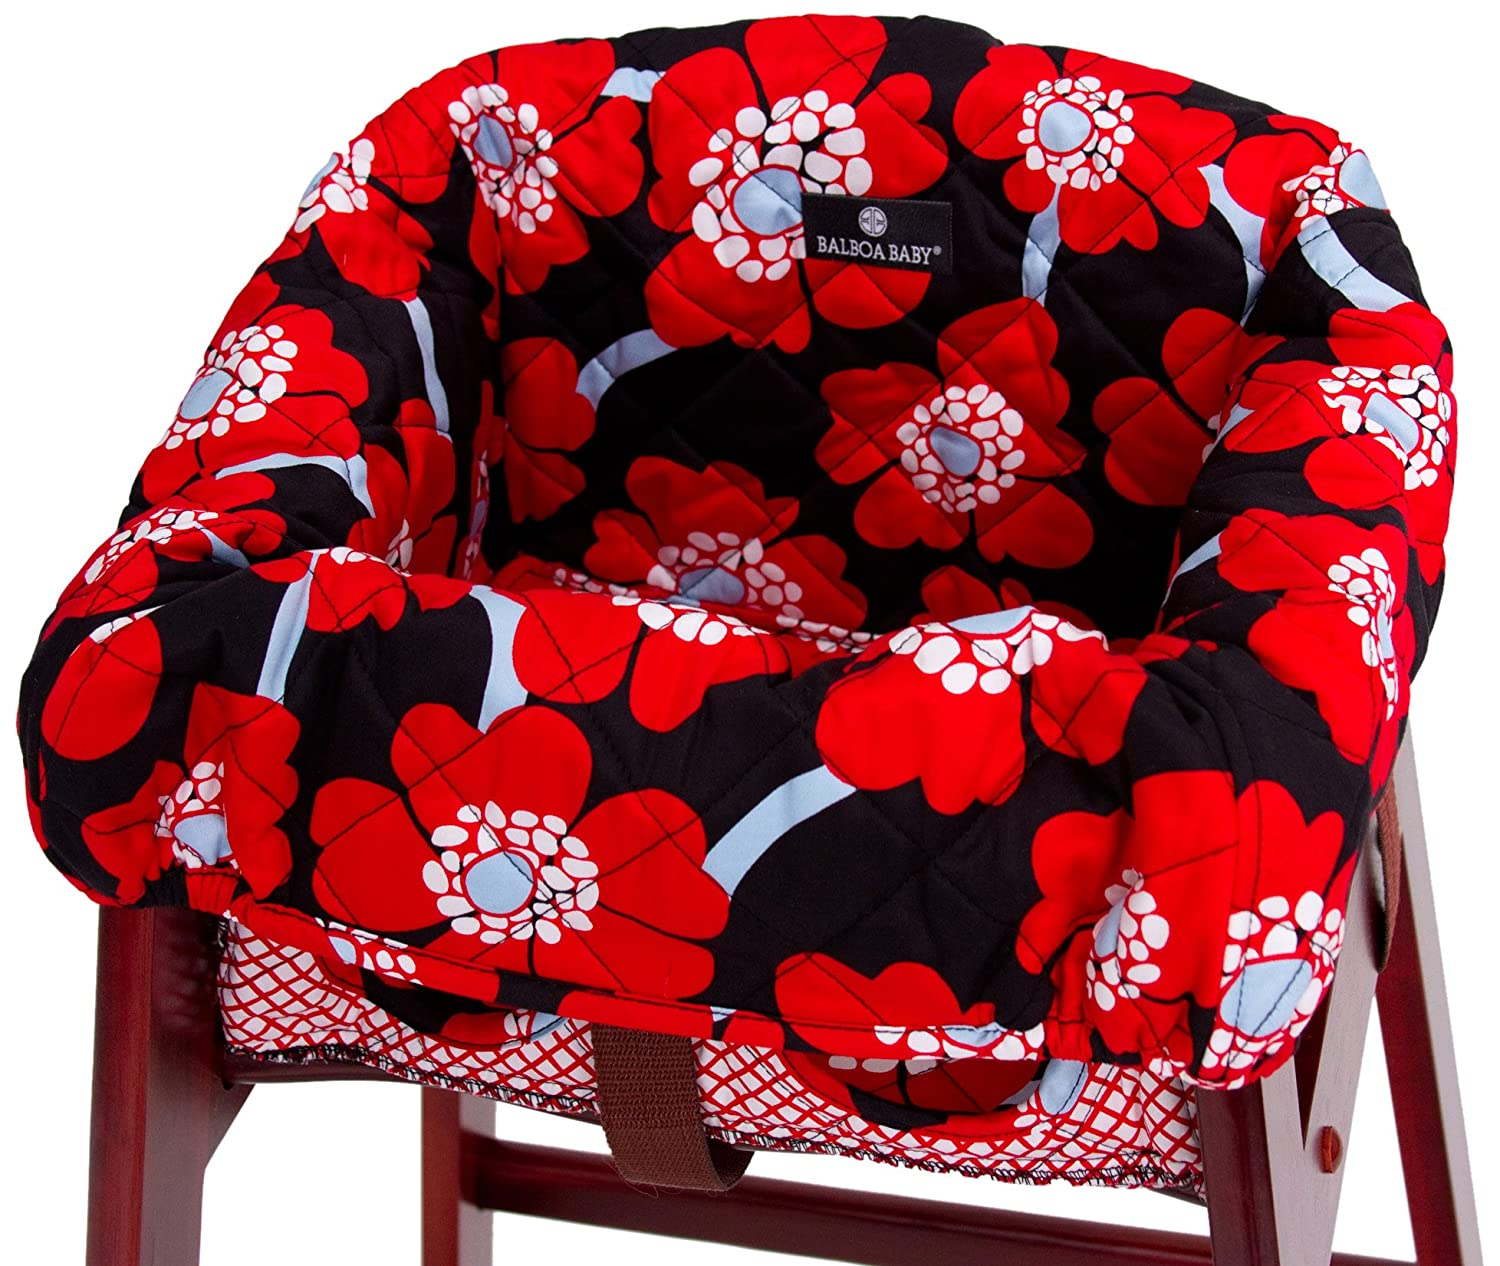 Astonishing Balboa Baby High Chair Cover Red Poppy Discontinued By Manufacturer Alphanode Cool Chair Designs And Ideas Alphanodeonline